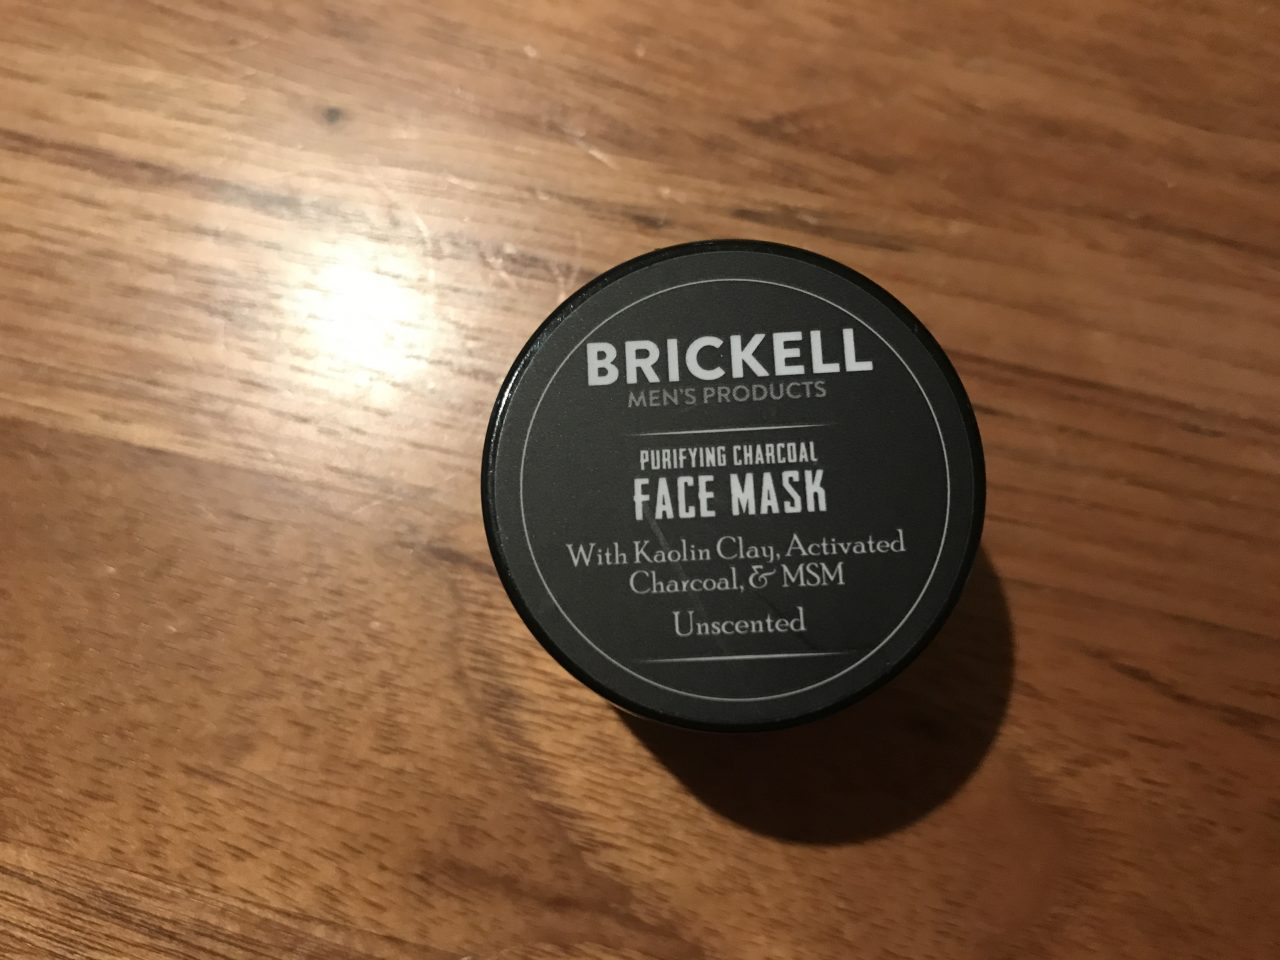 Purifying Charcoal Face Mask (Trial Jar)